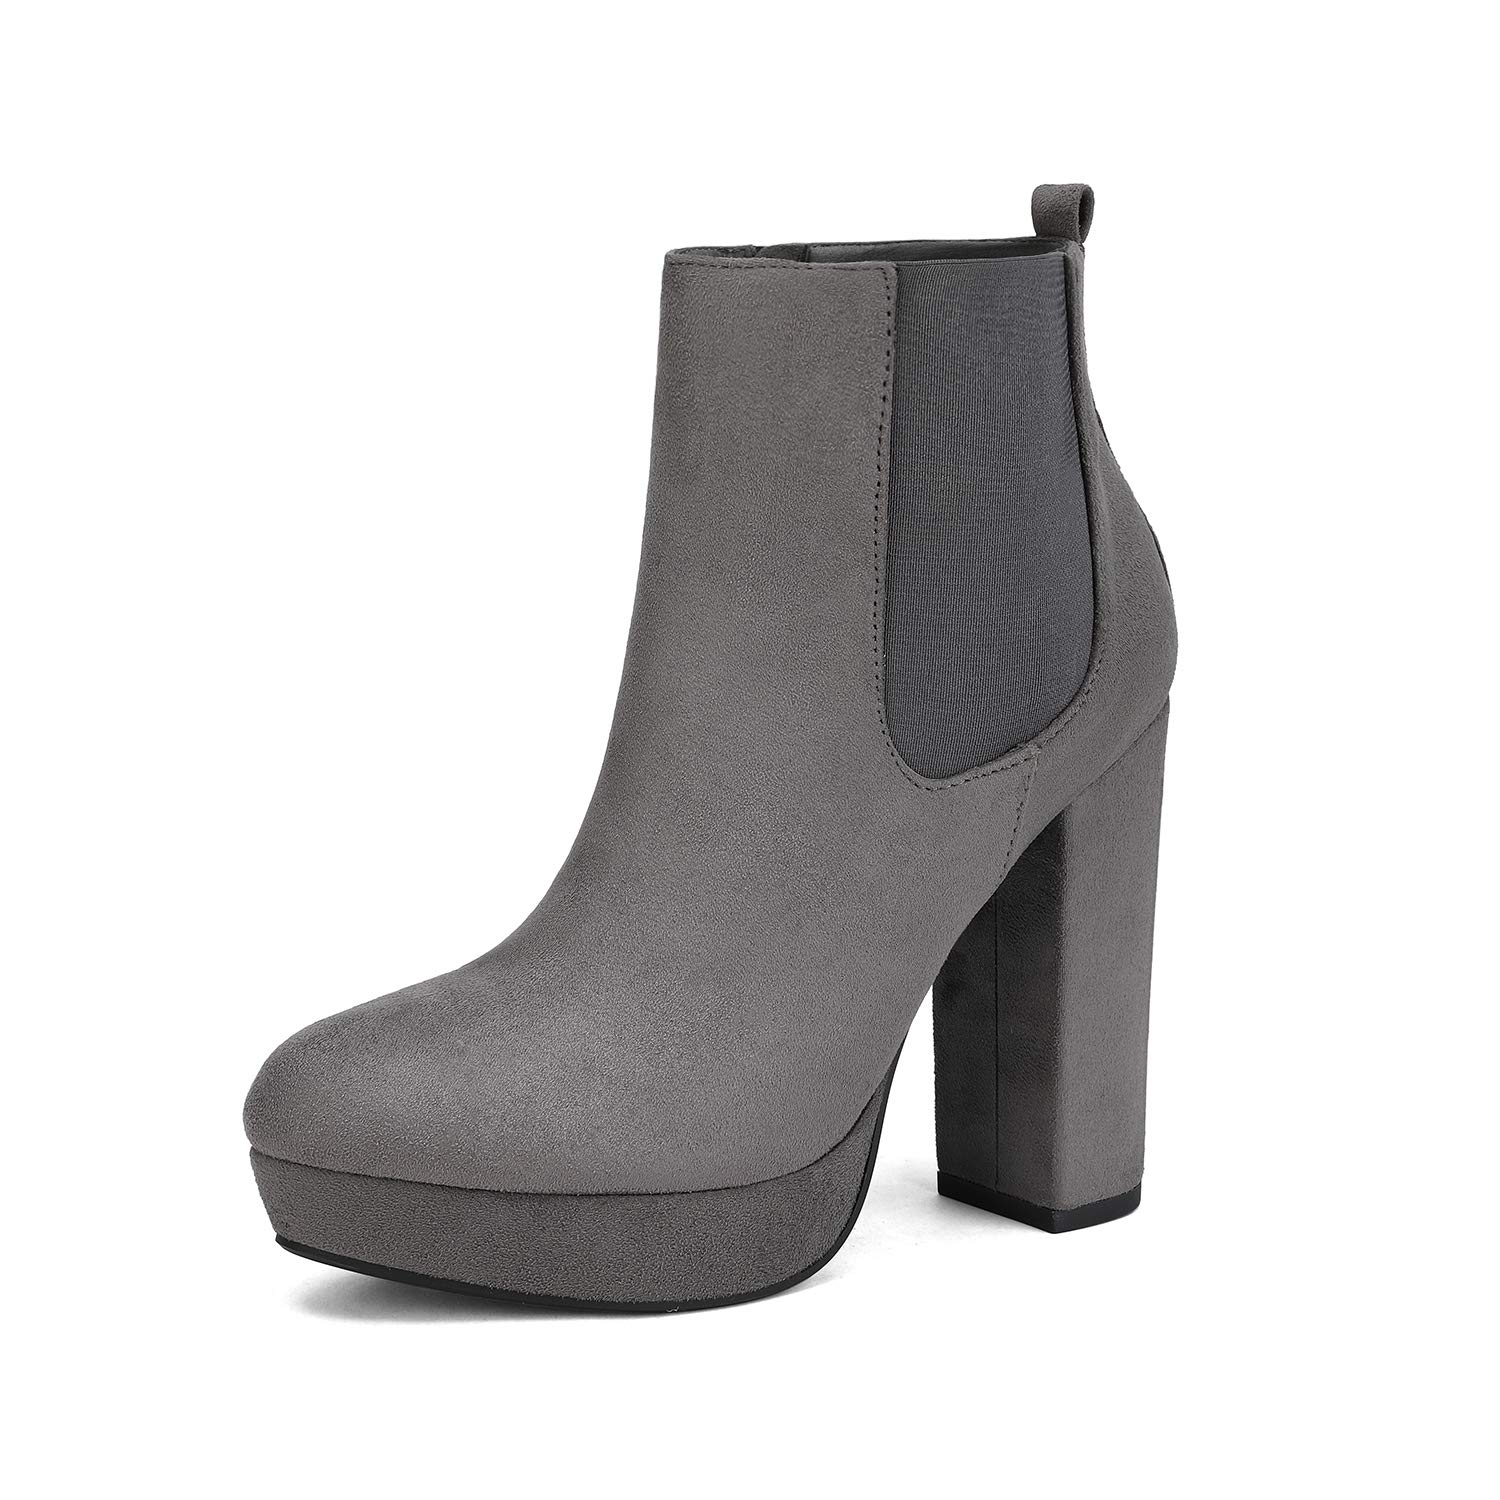 DREAM PAIRS Women's Chunky High Heel Ankle Boots Chelsea Booties